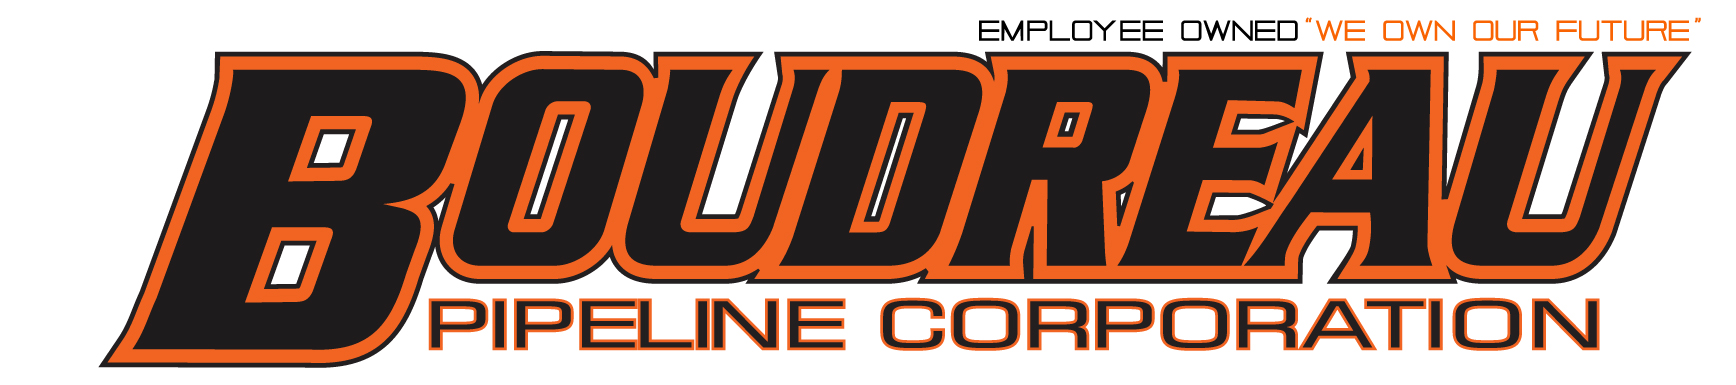 Boudreau Pipeline Corporation logo